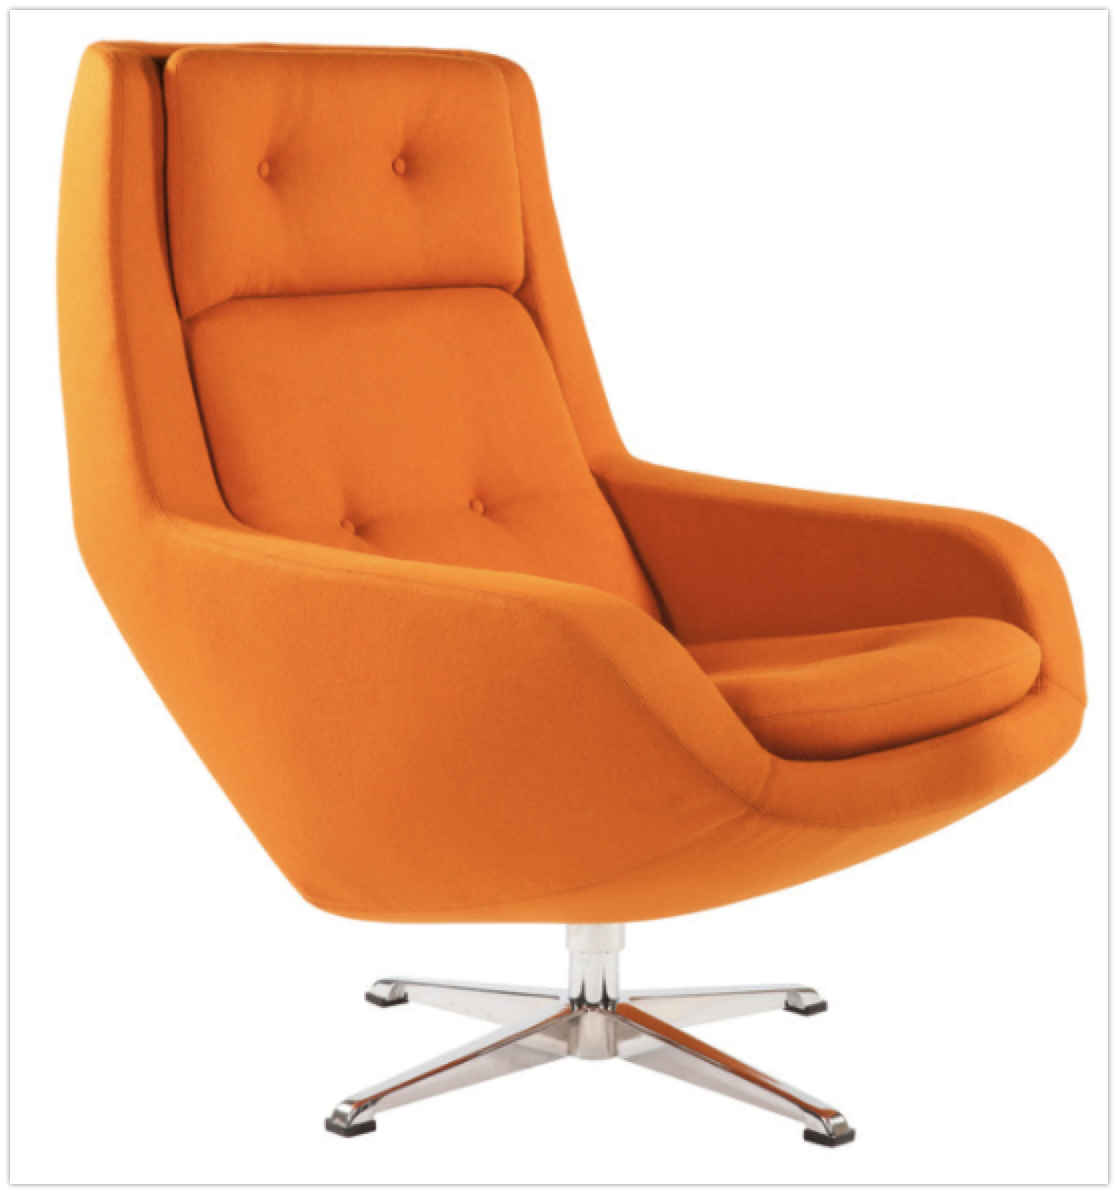 limburg-lounge-chair